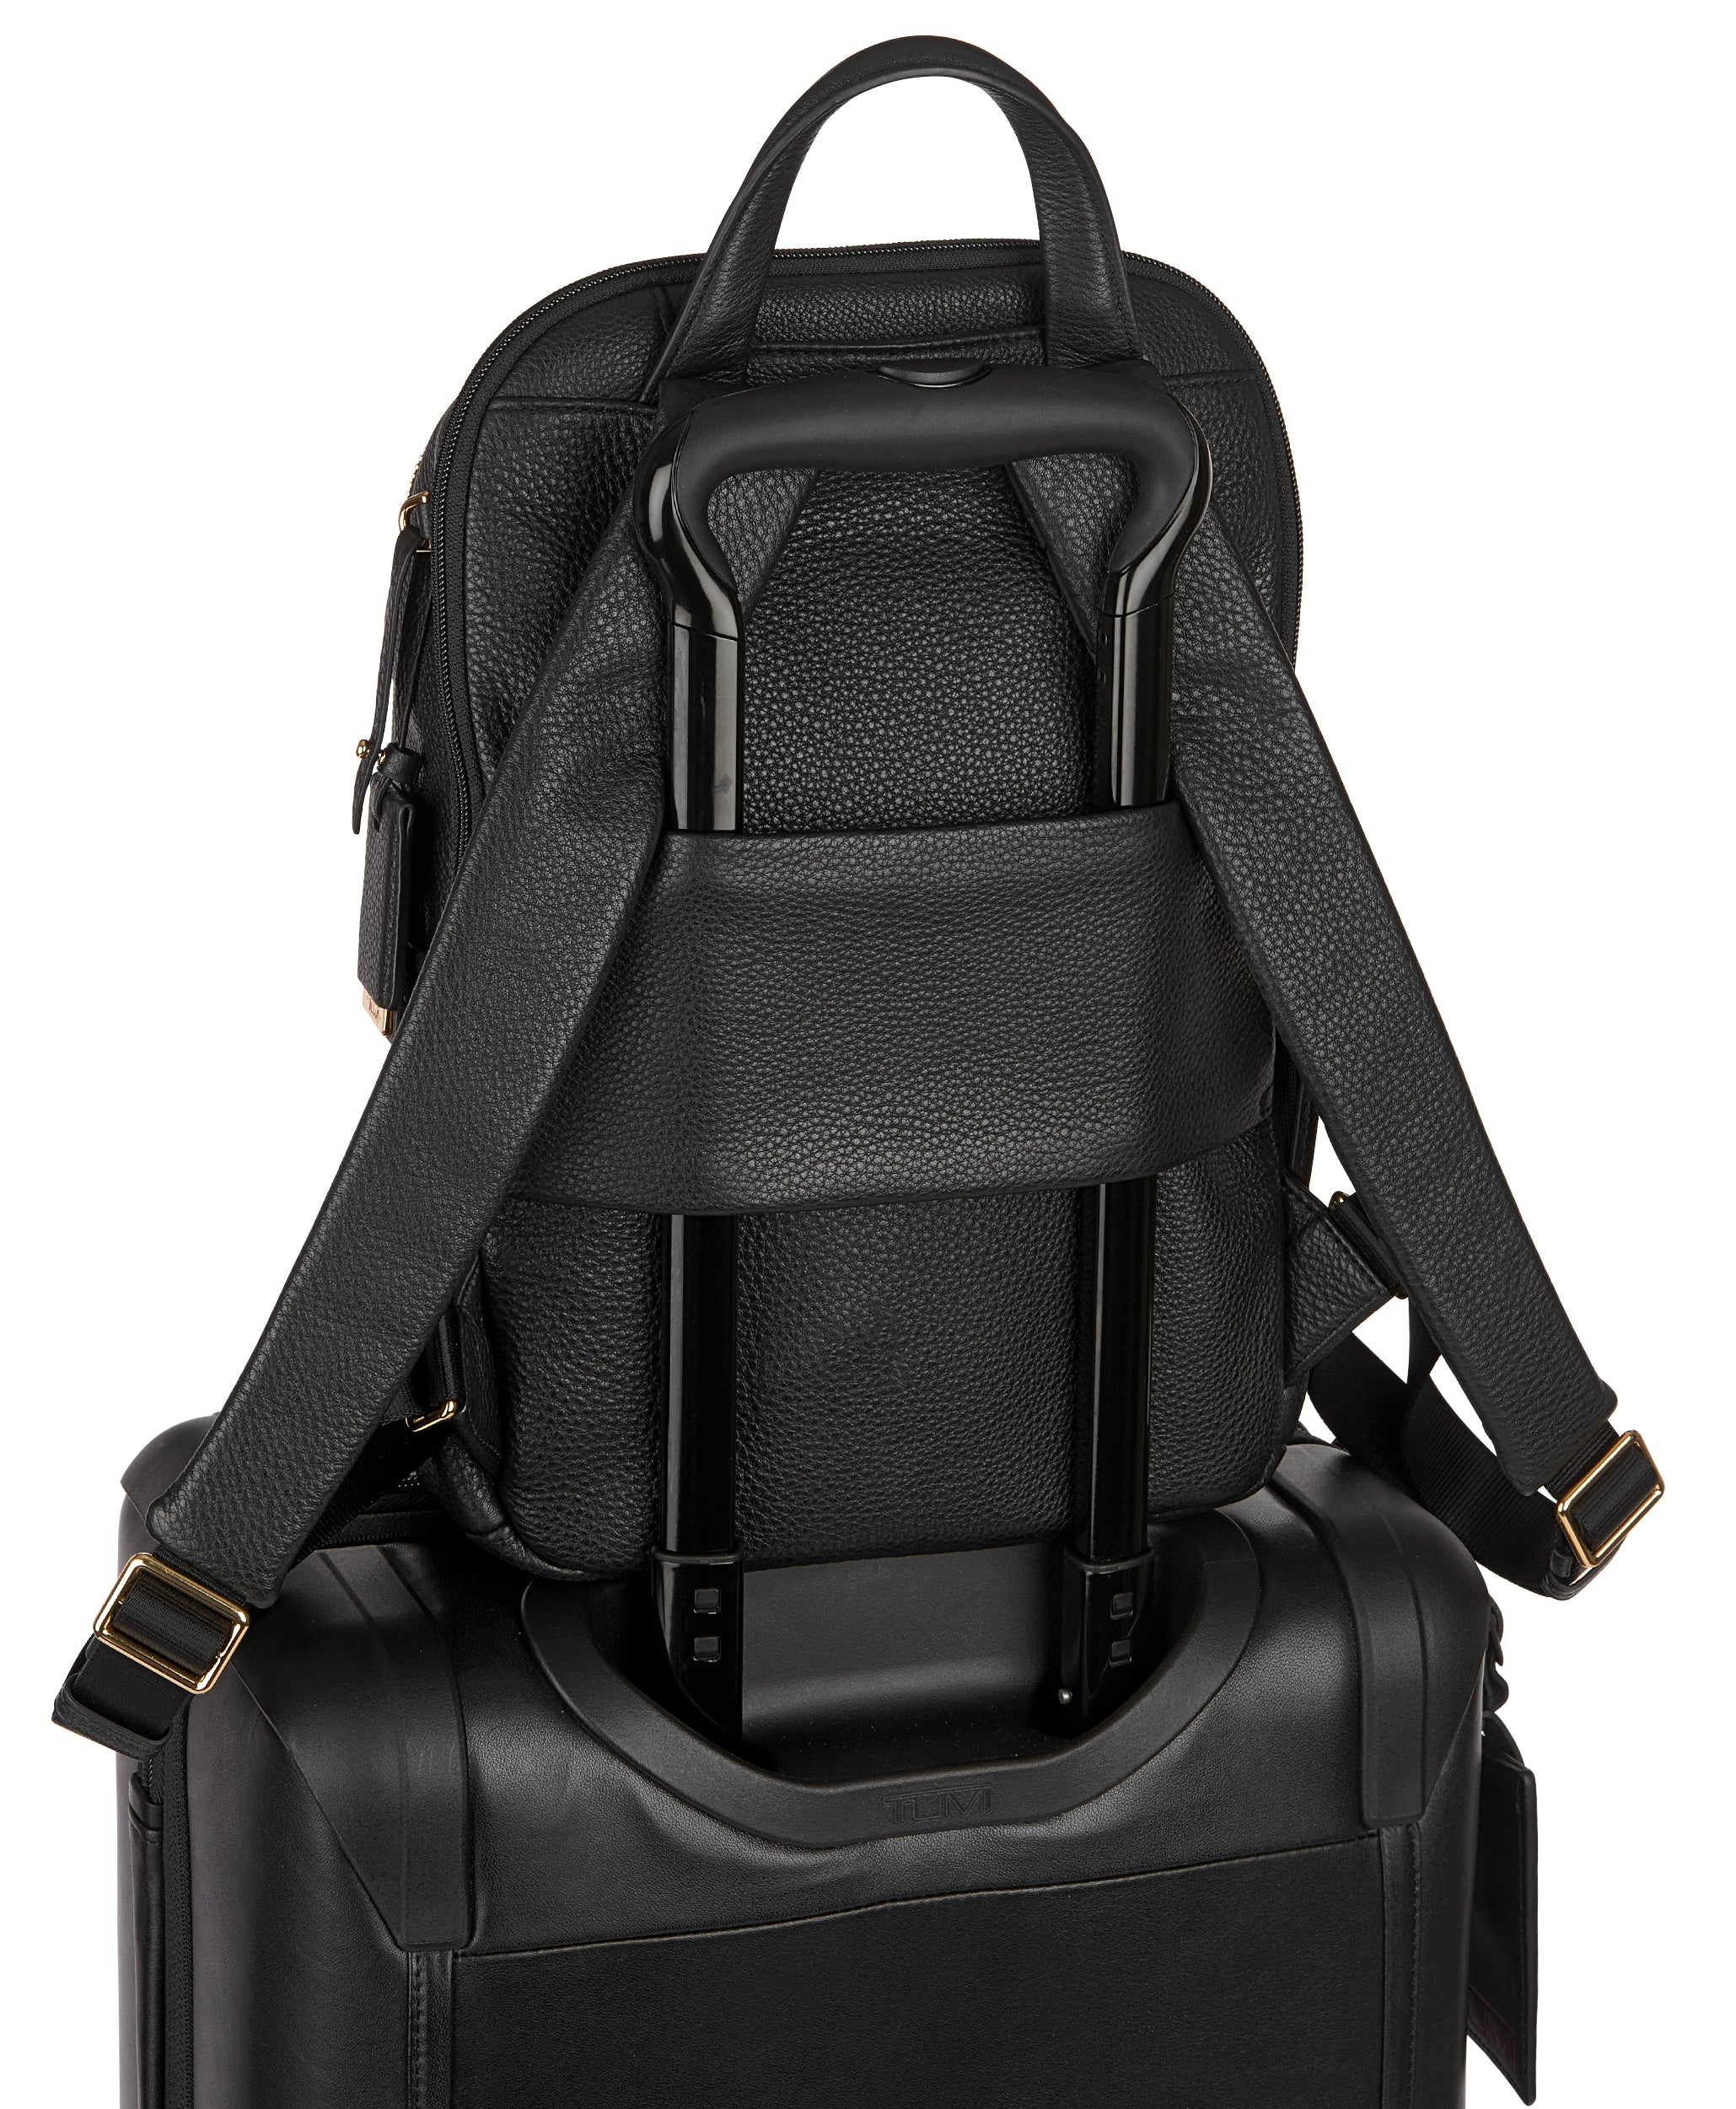 Tumi Voyageur Daniella Small Leather Backpack - Black | MEGO